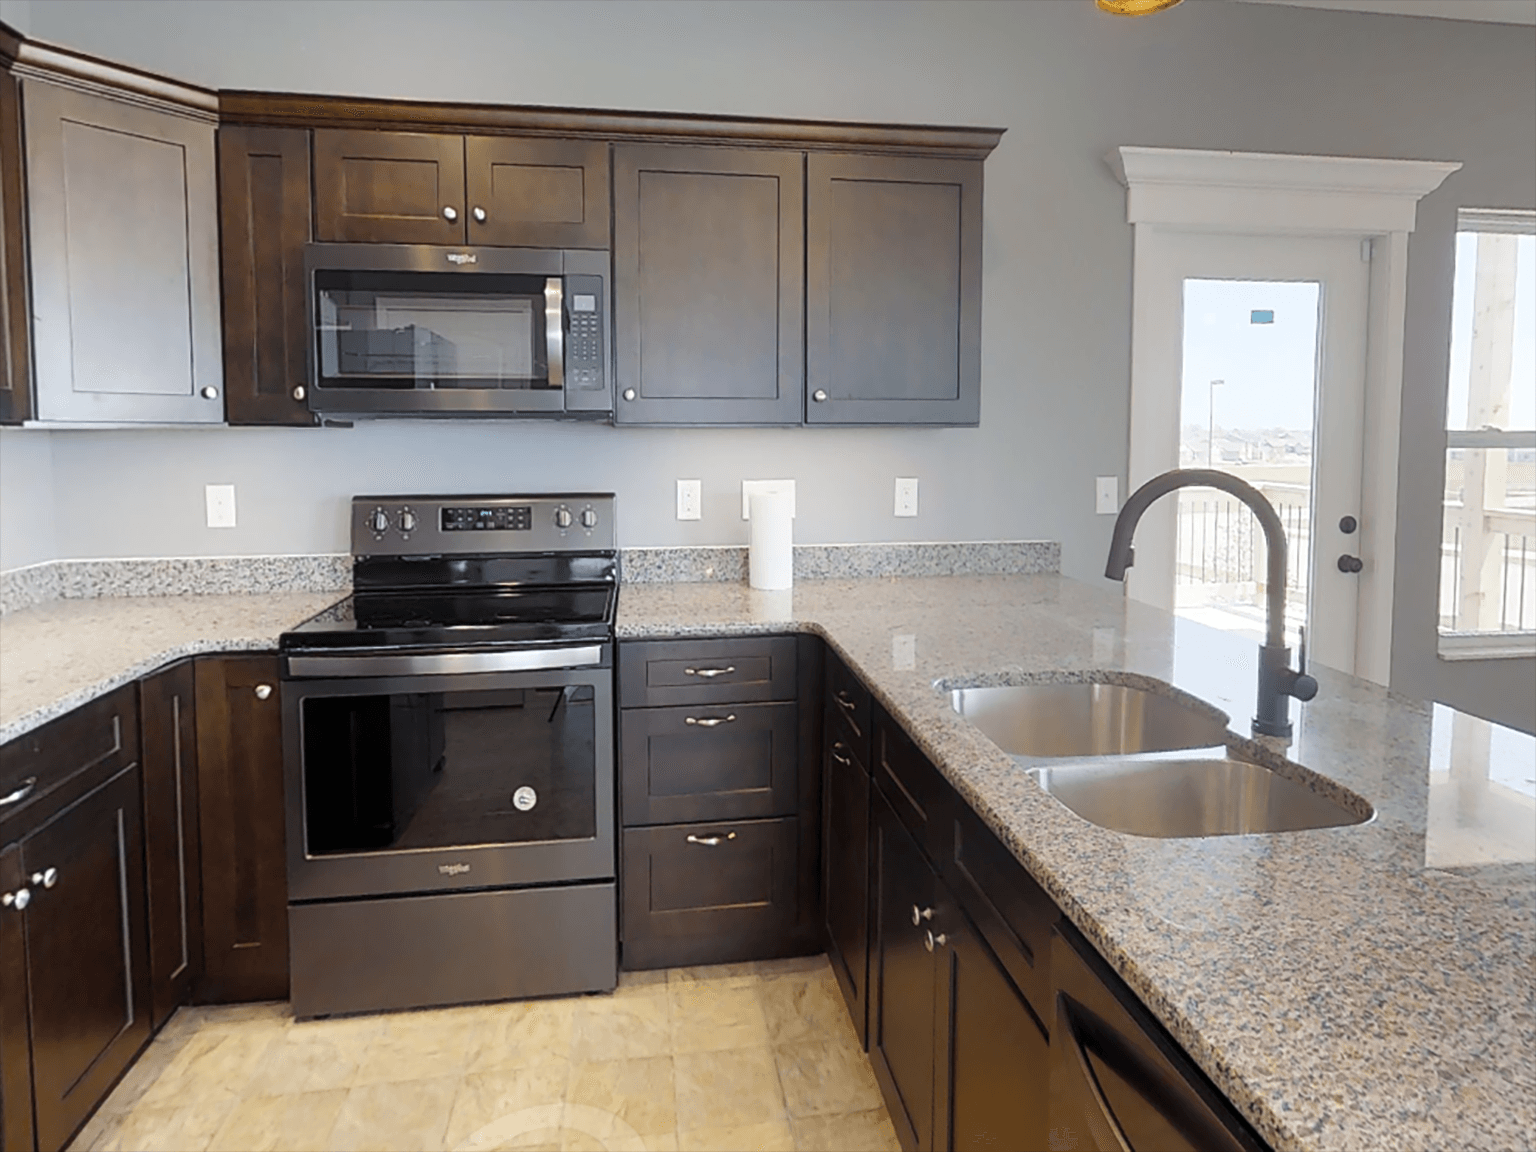 Kitchen featured in the Saddlecreek By C.A. Jones, Inc.  in St. Louis, IL